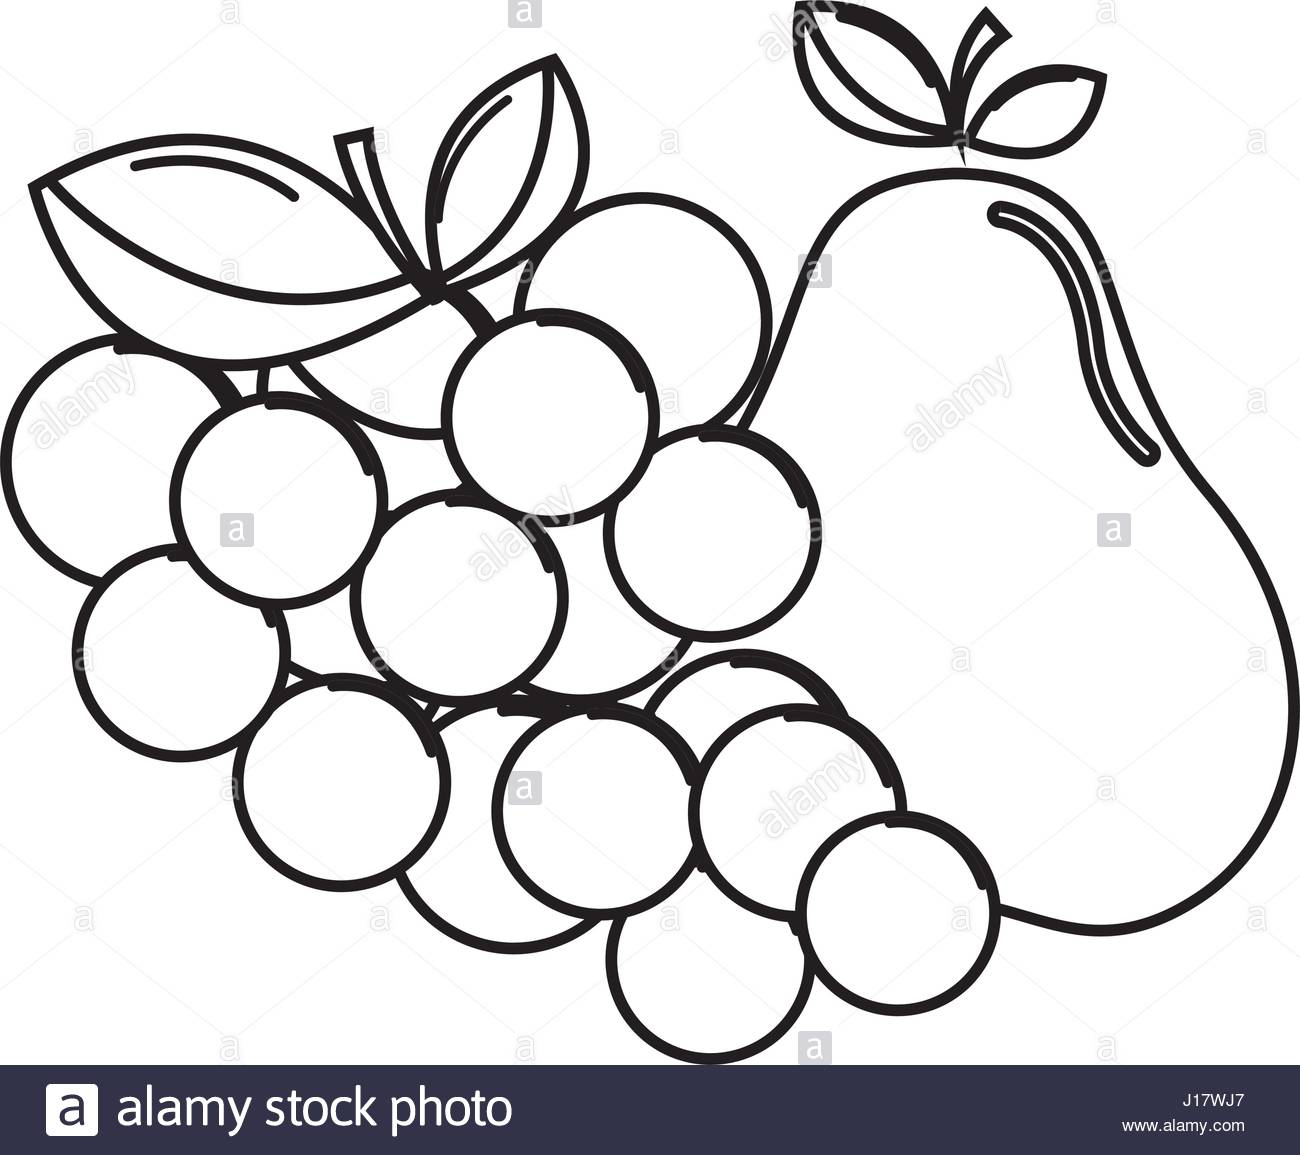 1300x1155 Silhouette Grape And Pear Fruits Icon Stock Vector Art